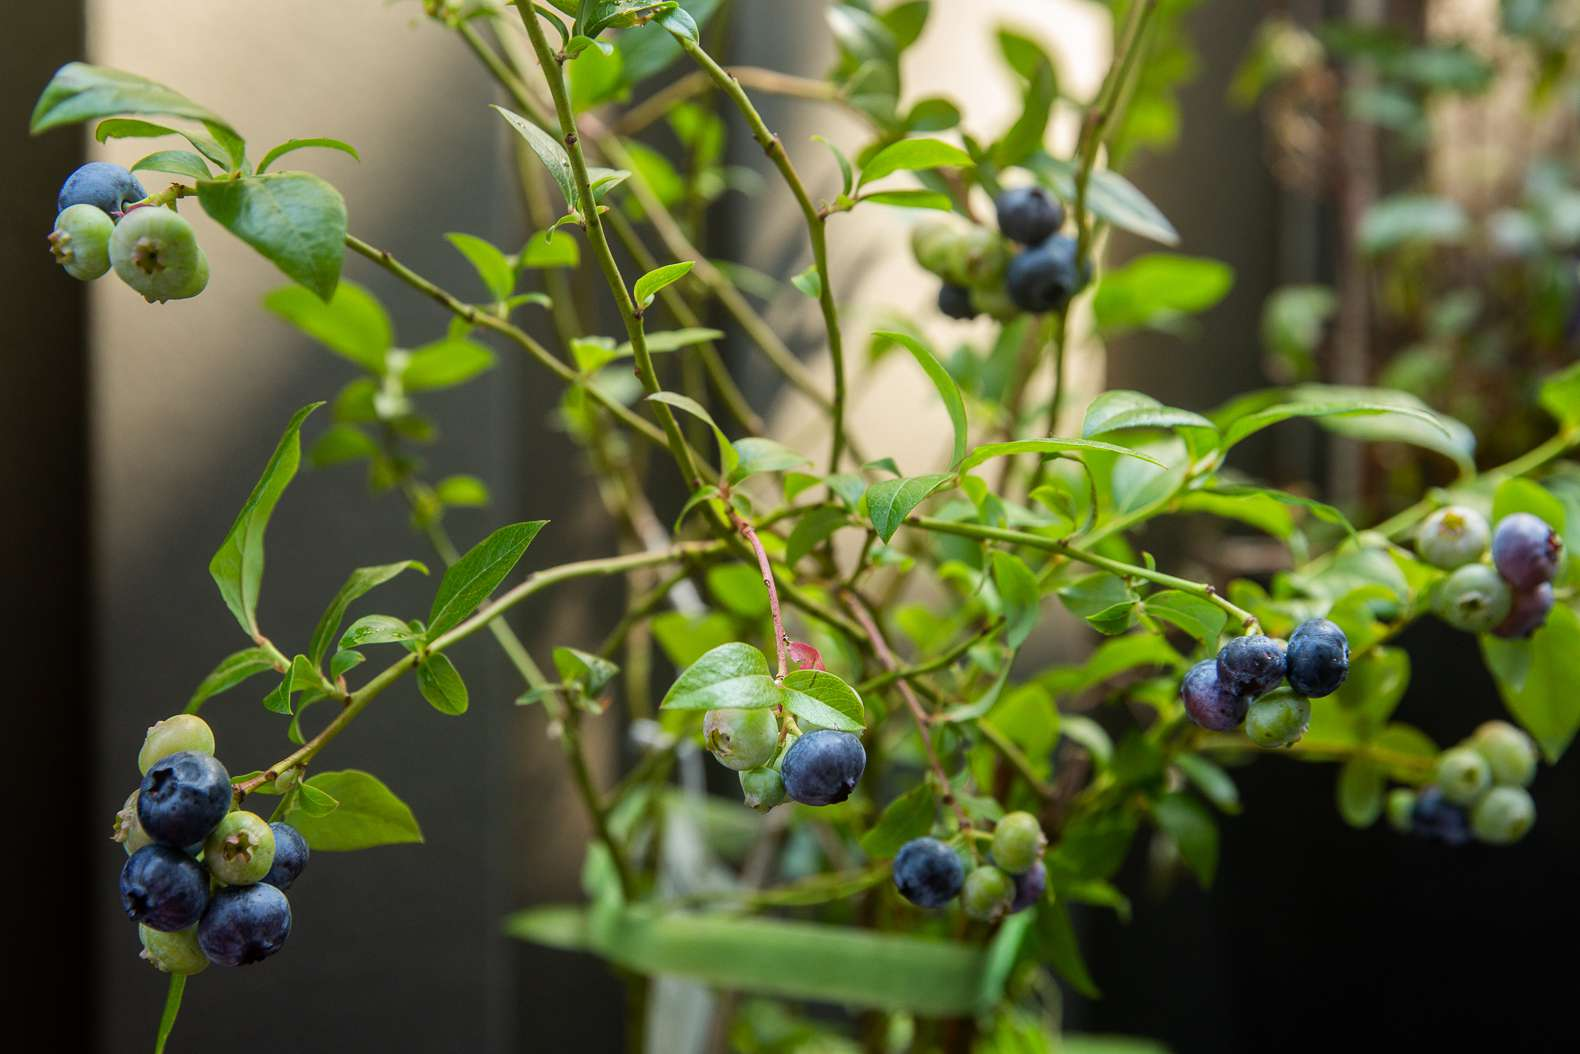 Organic blueberry bush with thin branches and small green leaves with blue and green blueberries hanging on ends